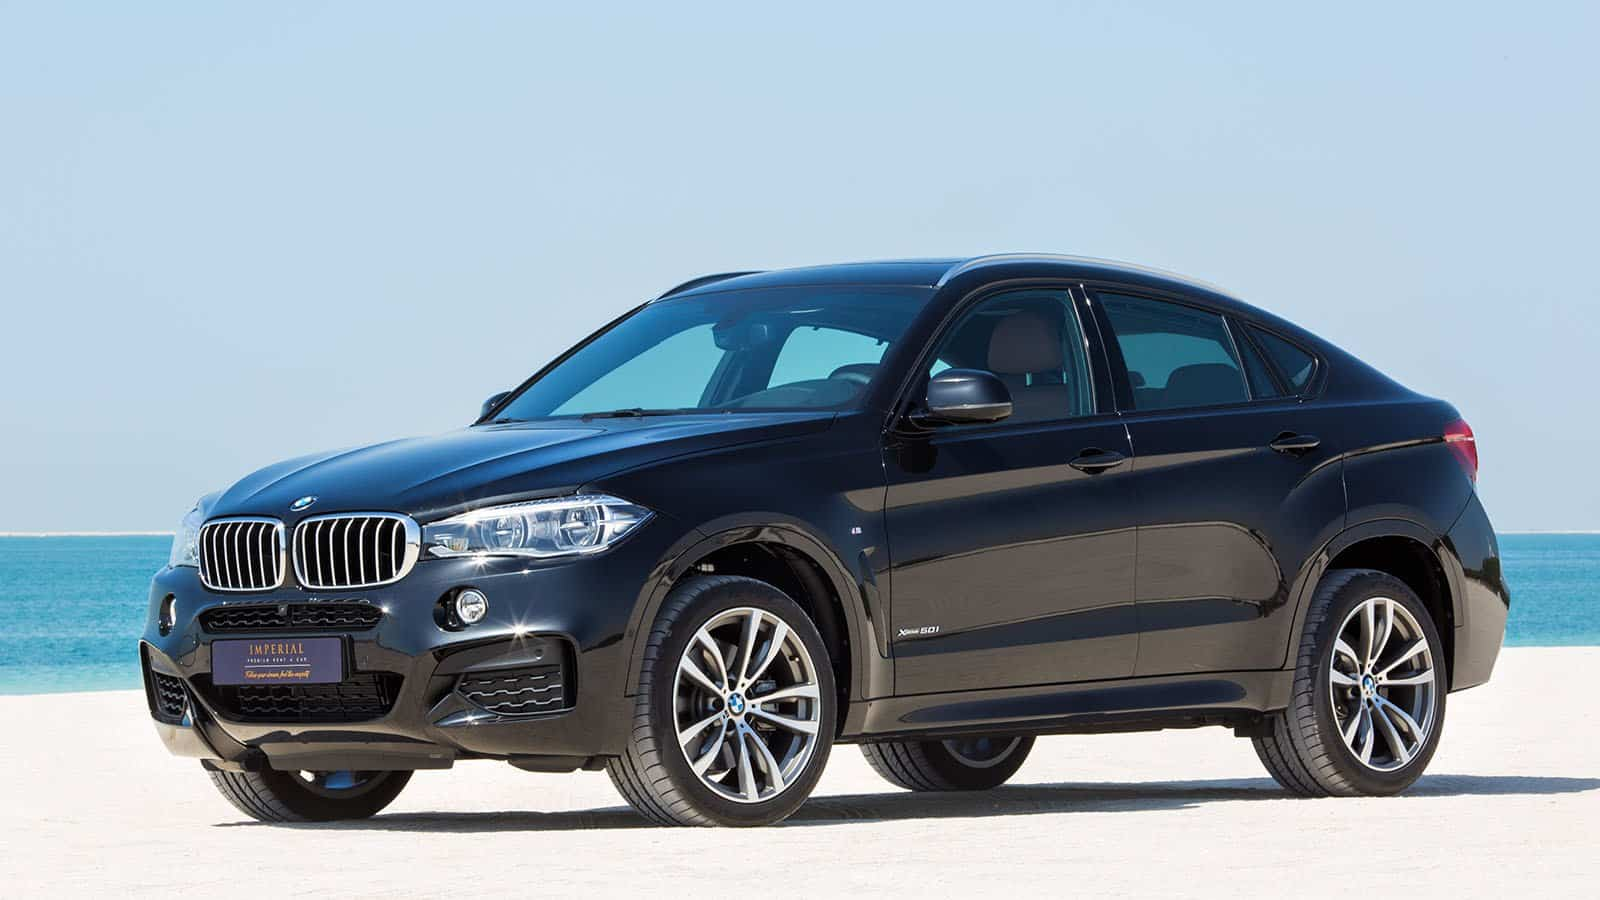 bmw x6 m plus sport imperial premium rent a car dubai. Black Bedroom Furniture Sets. Home Design Ideas